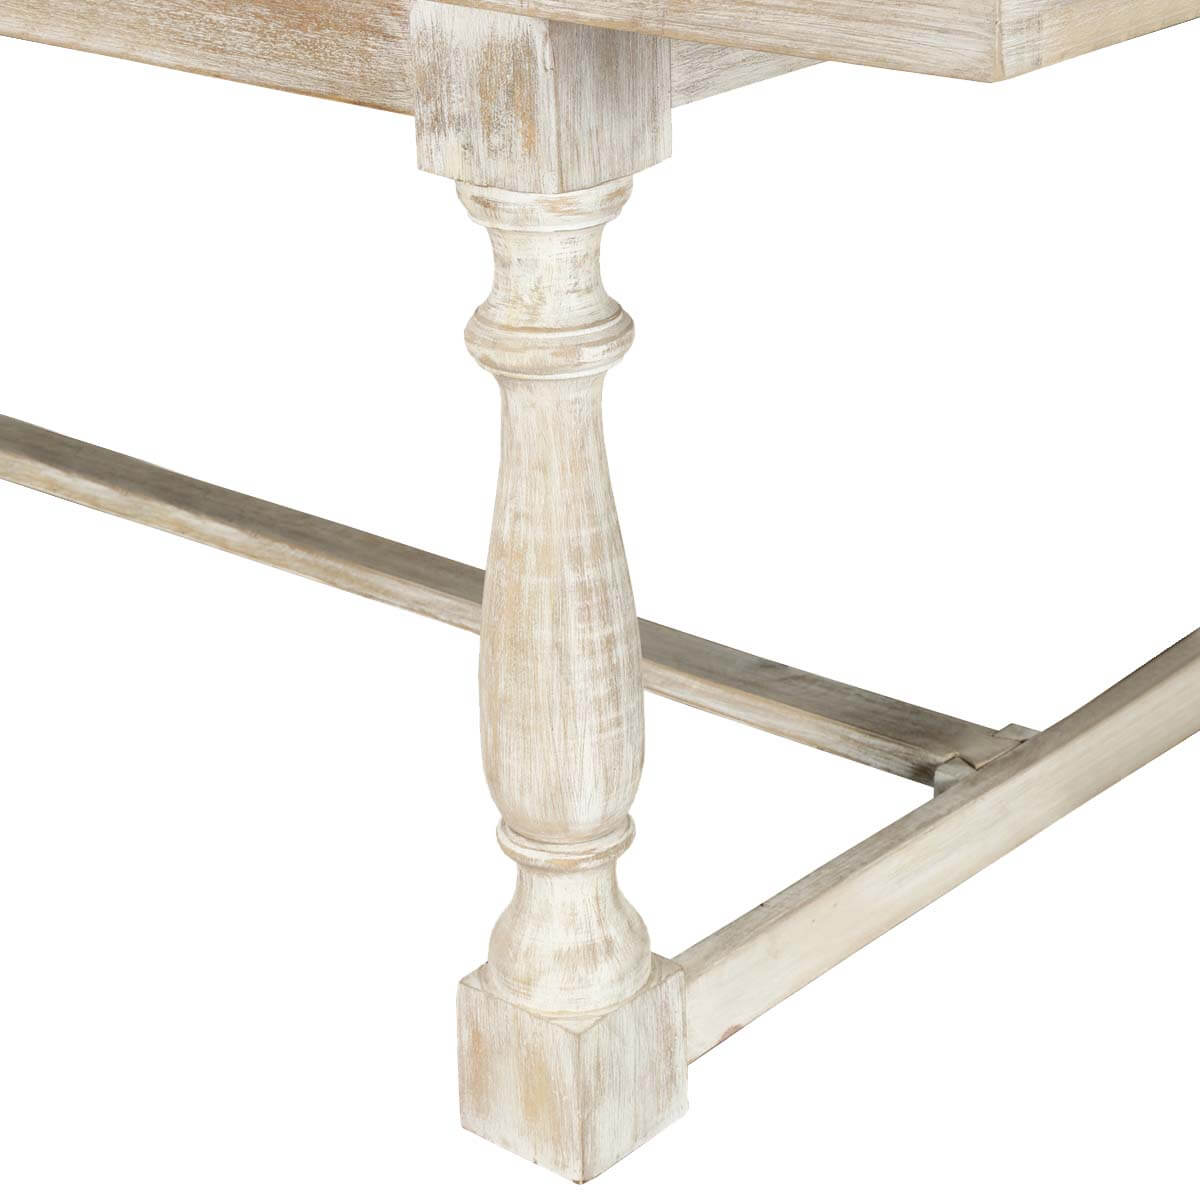 Seattle Rustic Distressed Finish Solid Mango Wood Trestle